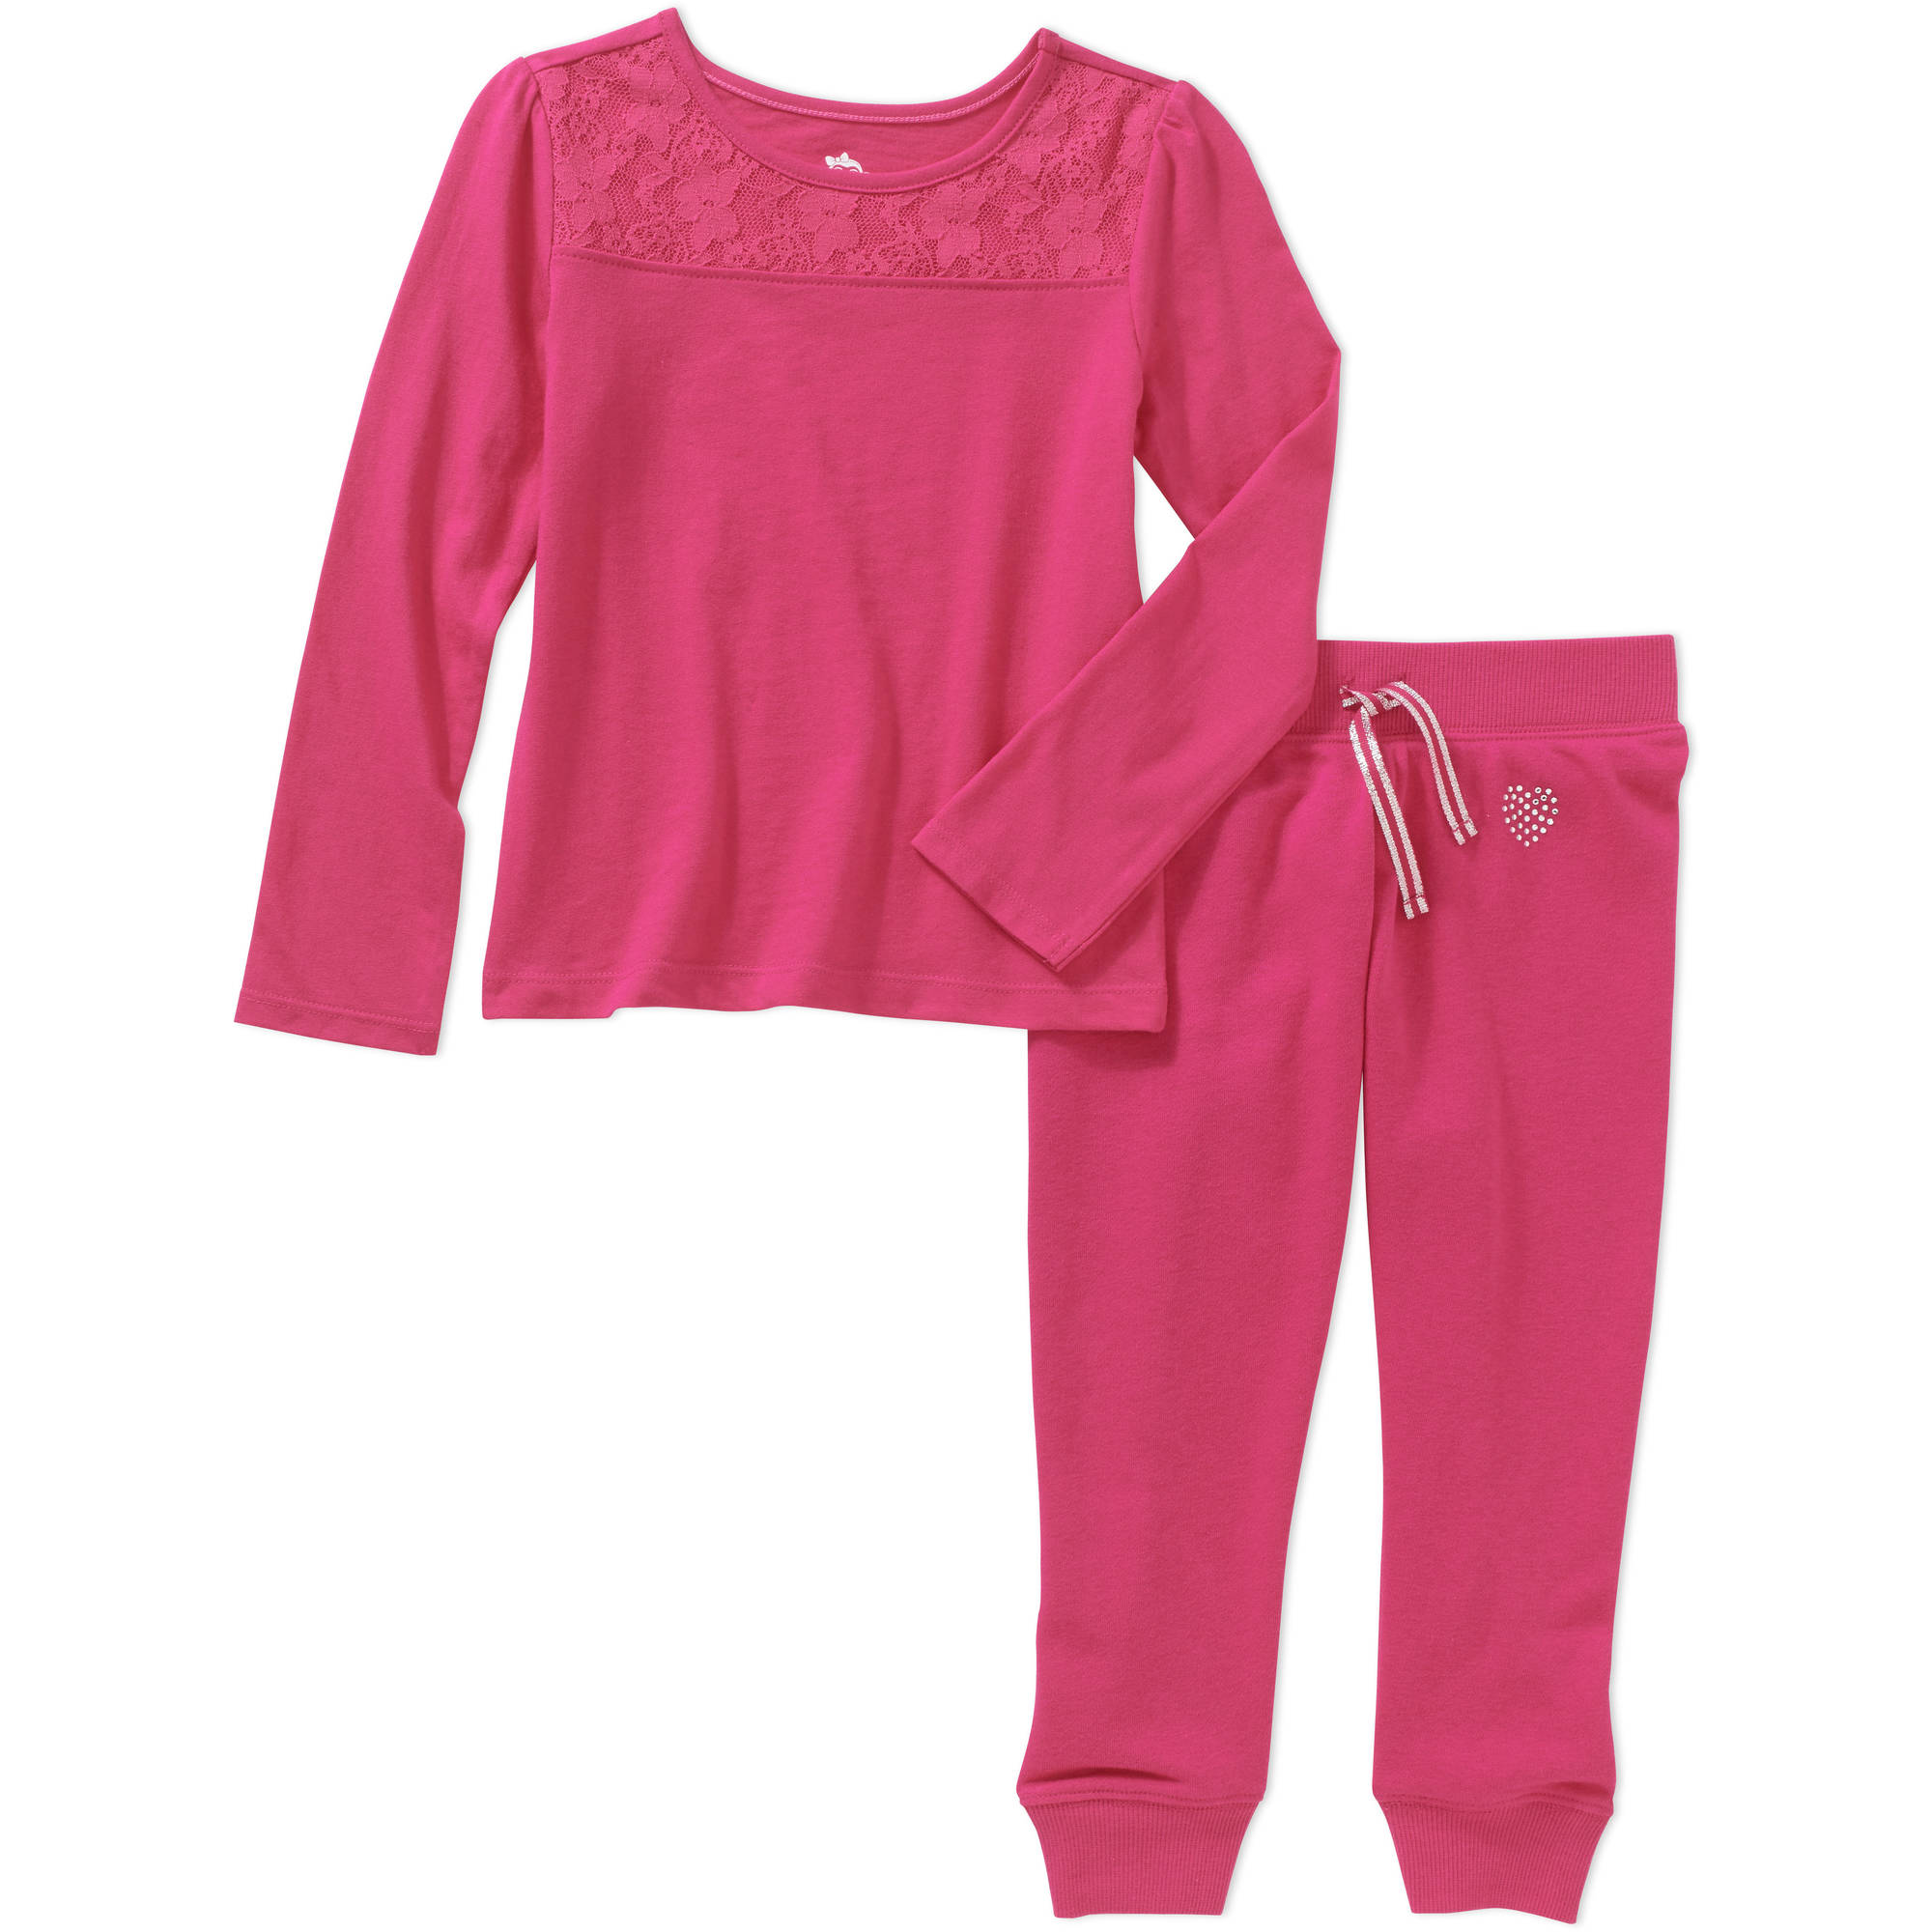 365 Kids from Garanimals Girls' Long Sleeve Lace Tee and French Terry Jogger Outfit Set